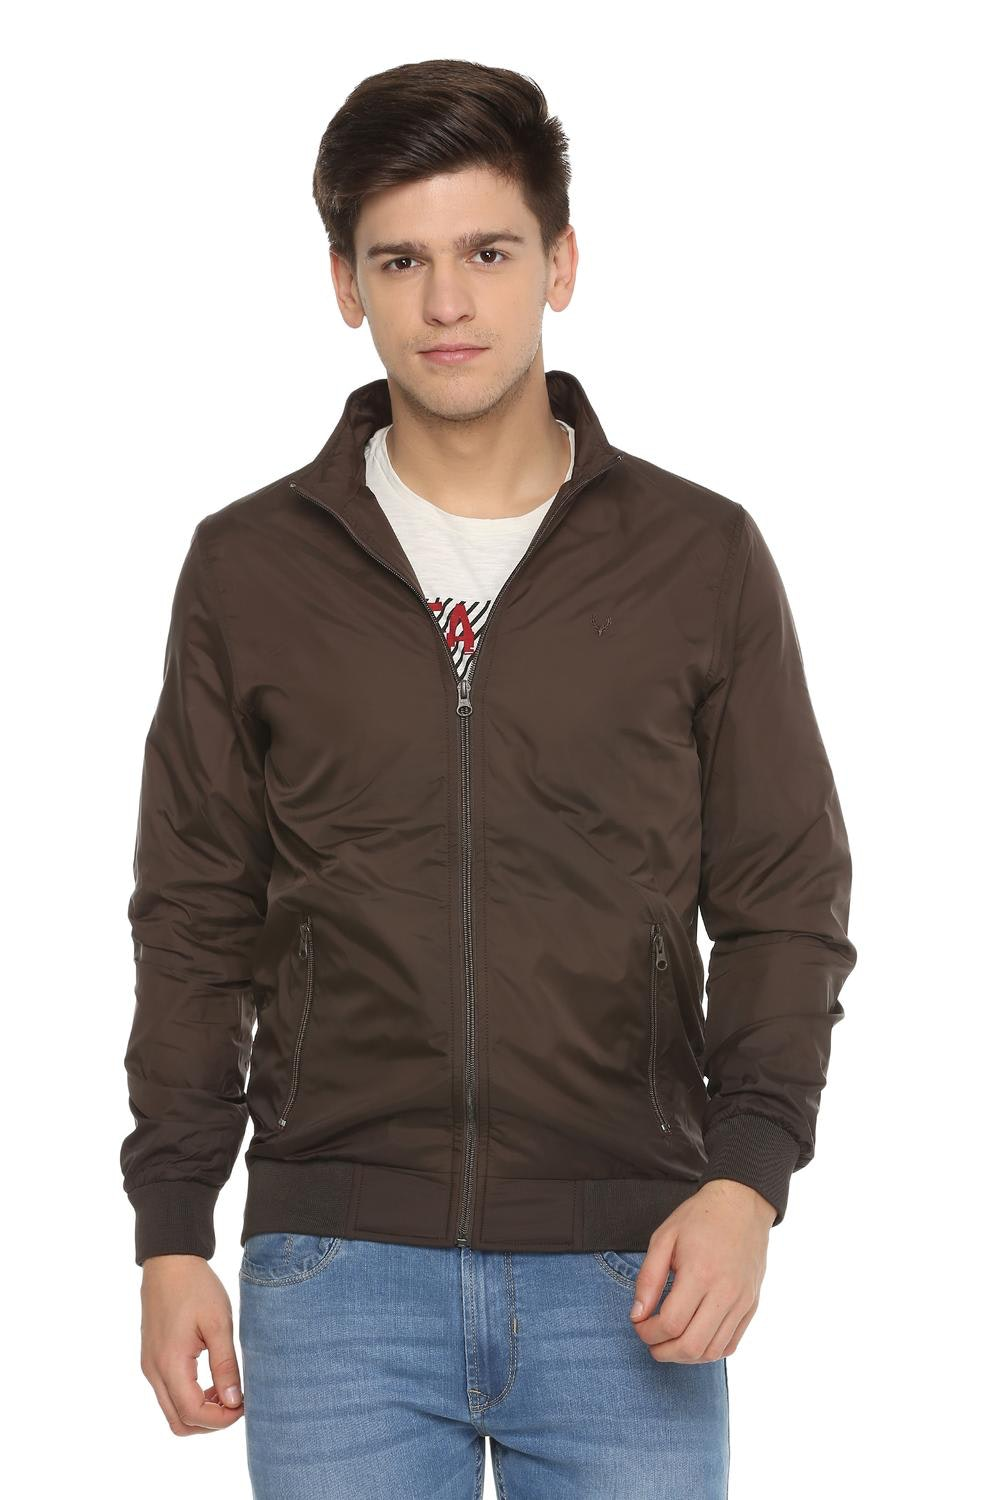 d156cdad514 Buy Mens Allen Solly Jacket